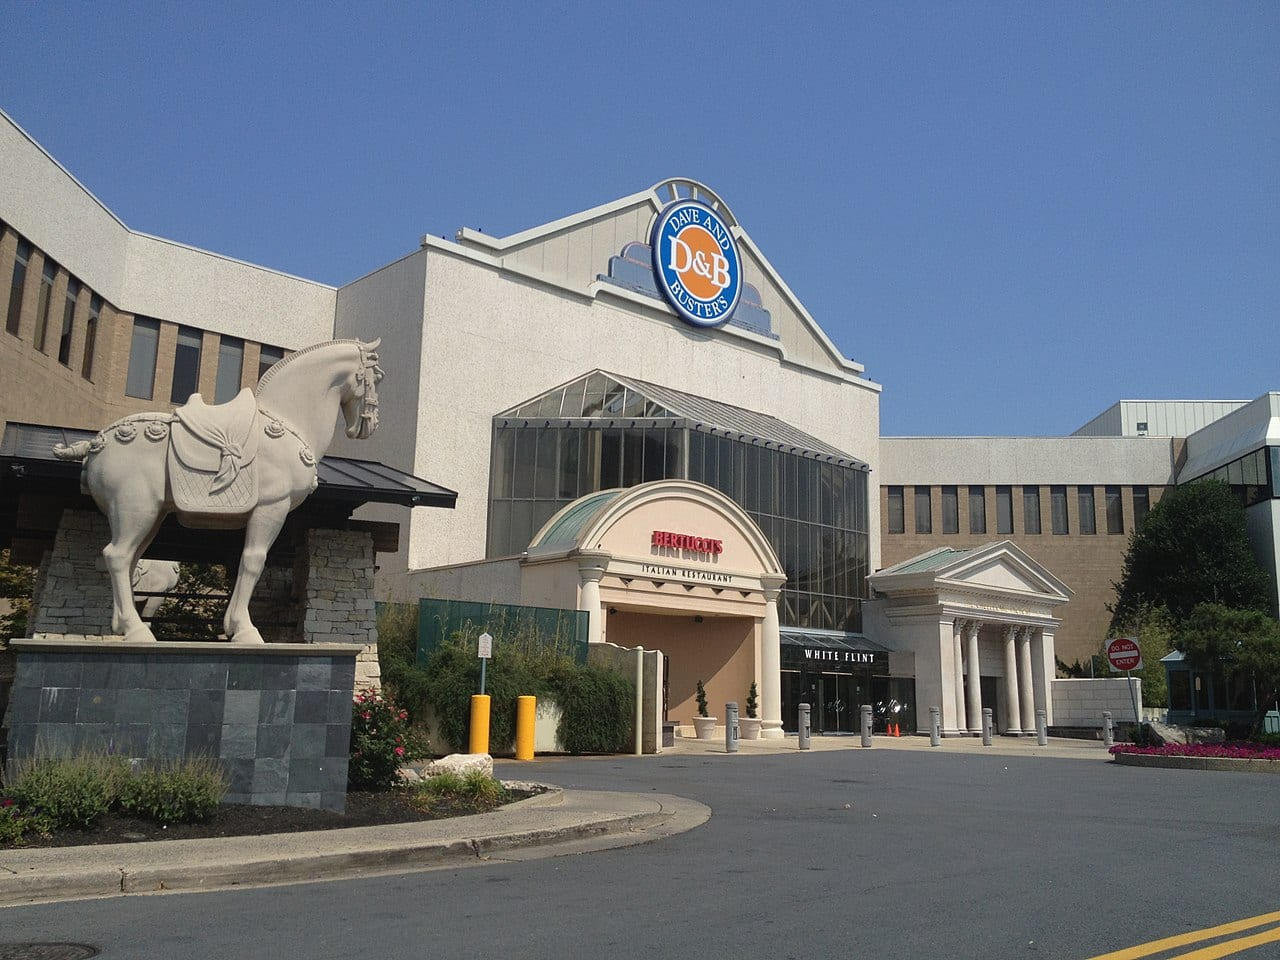 Dave and Busters Odeon Capitalist religion